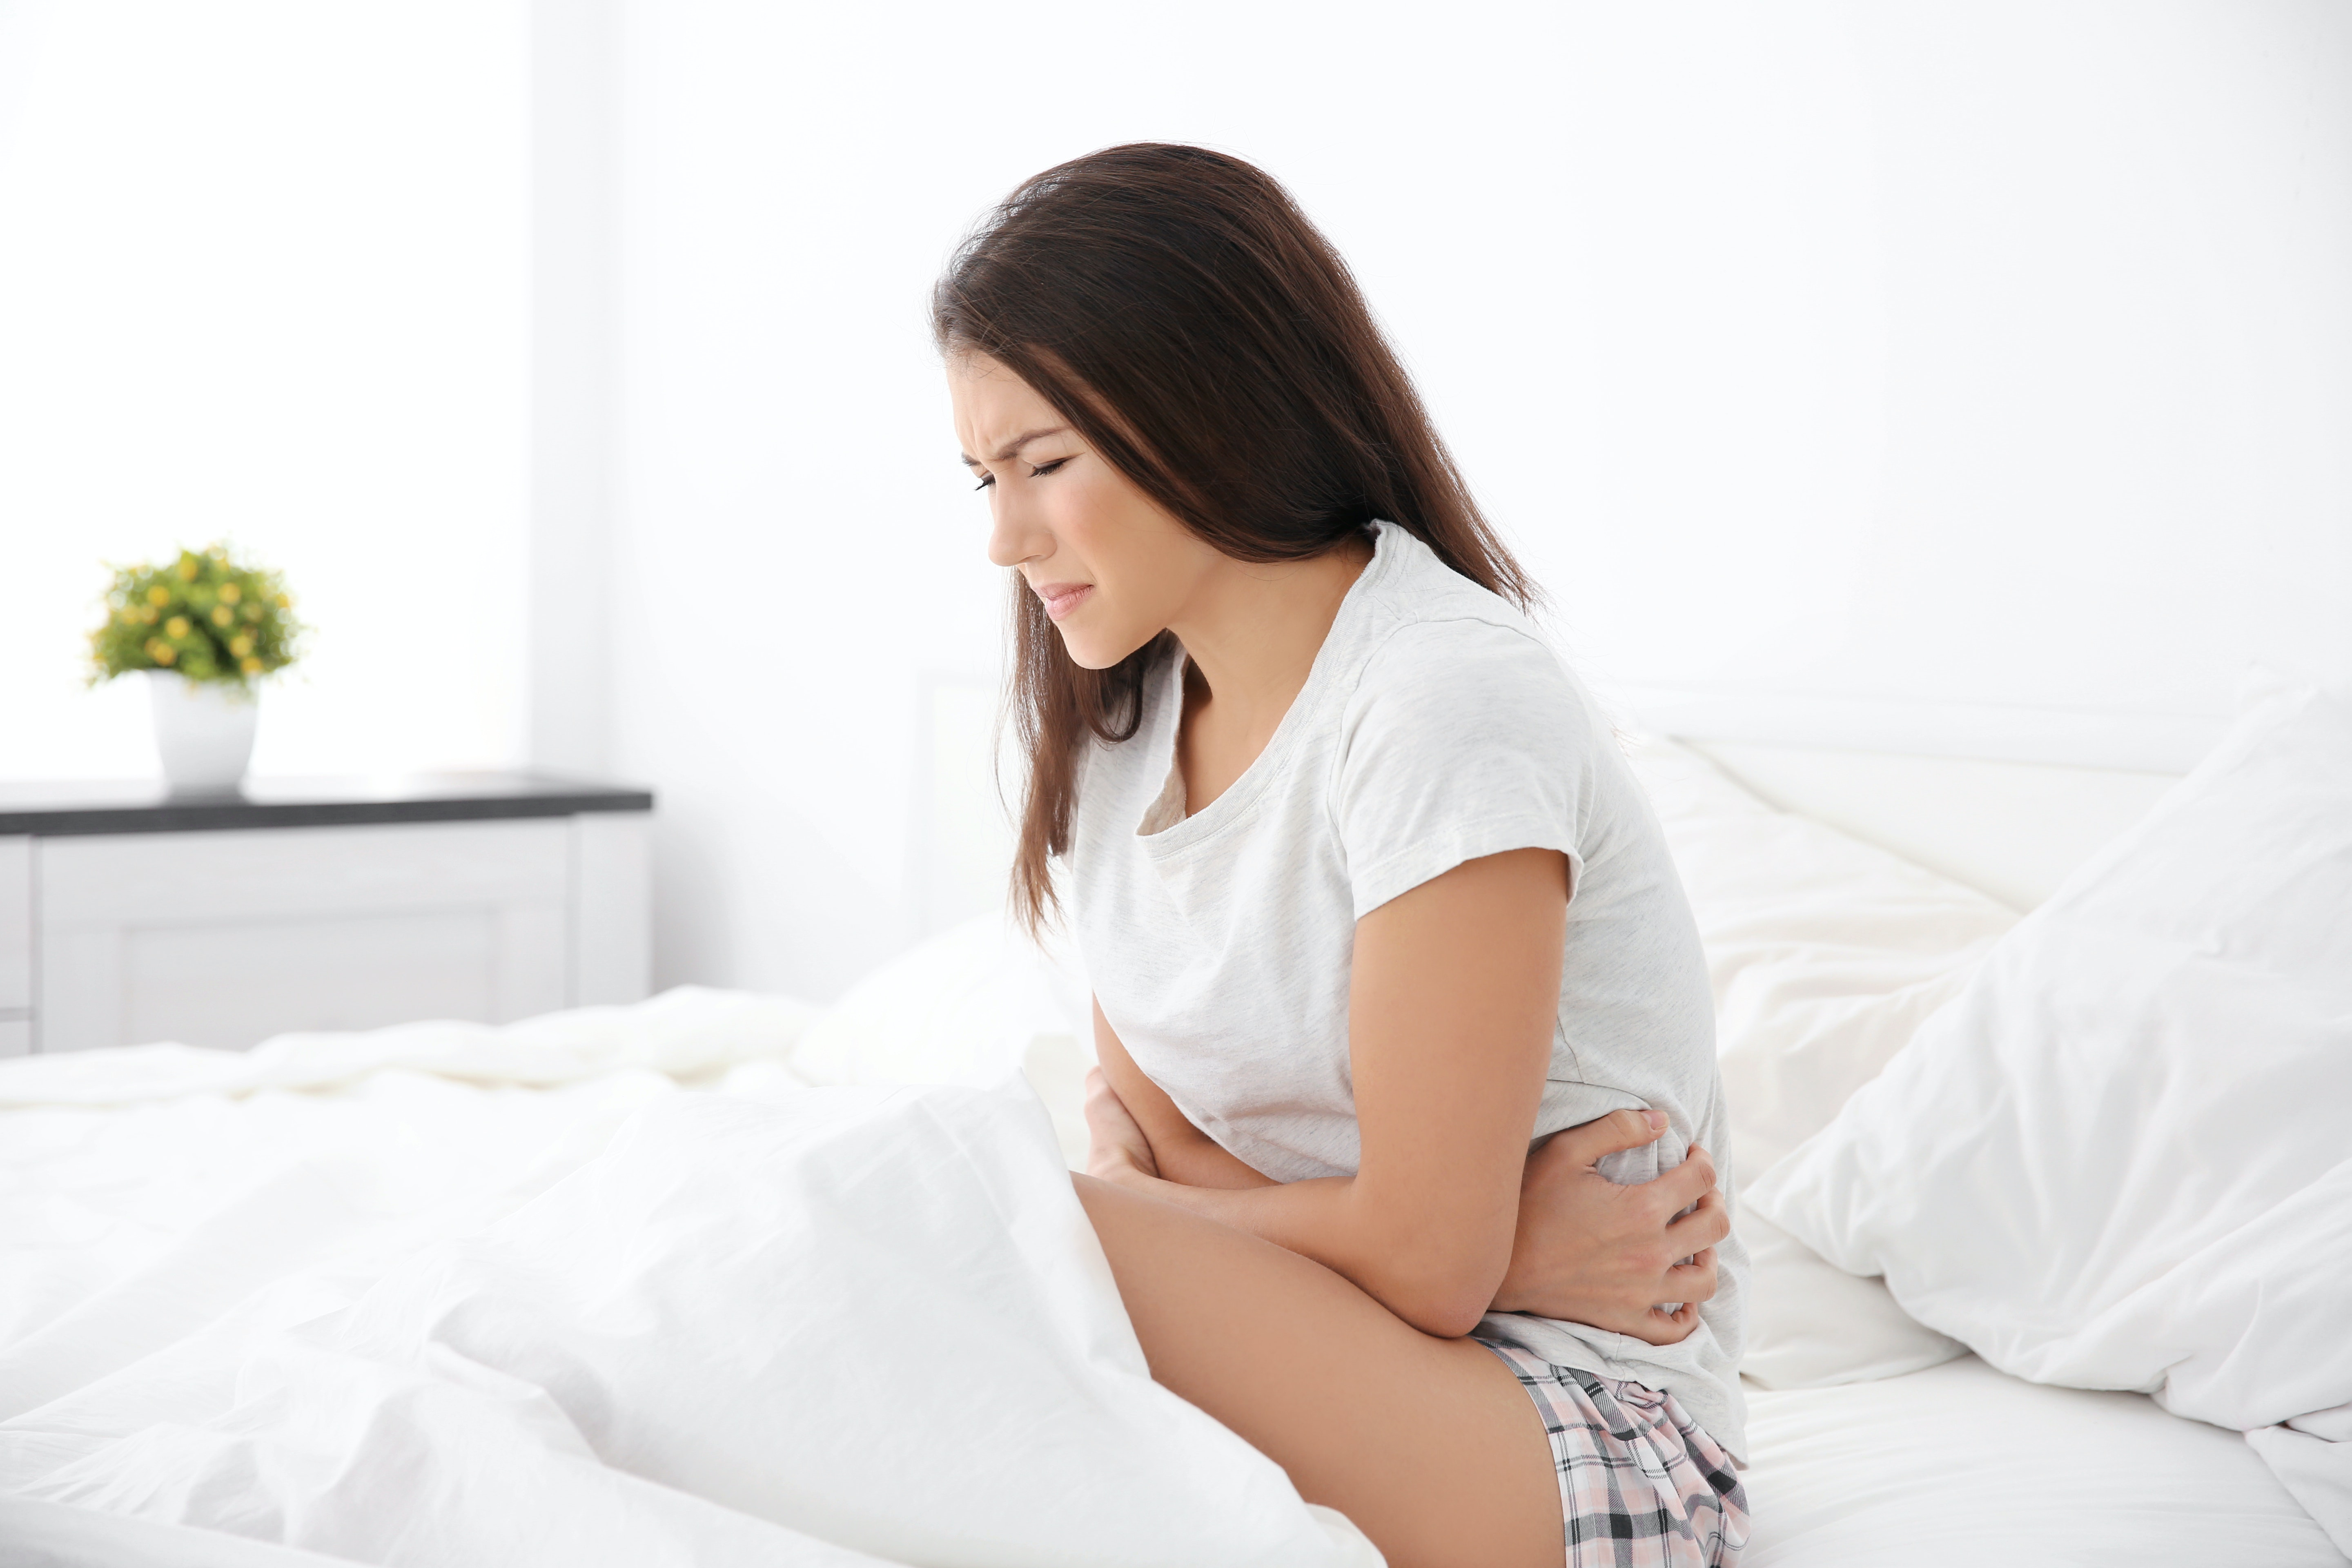 An image depicting a person suffering from pain below the ribs symptoms